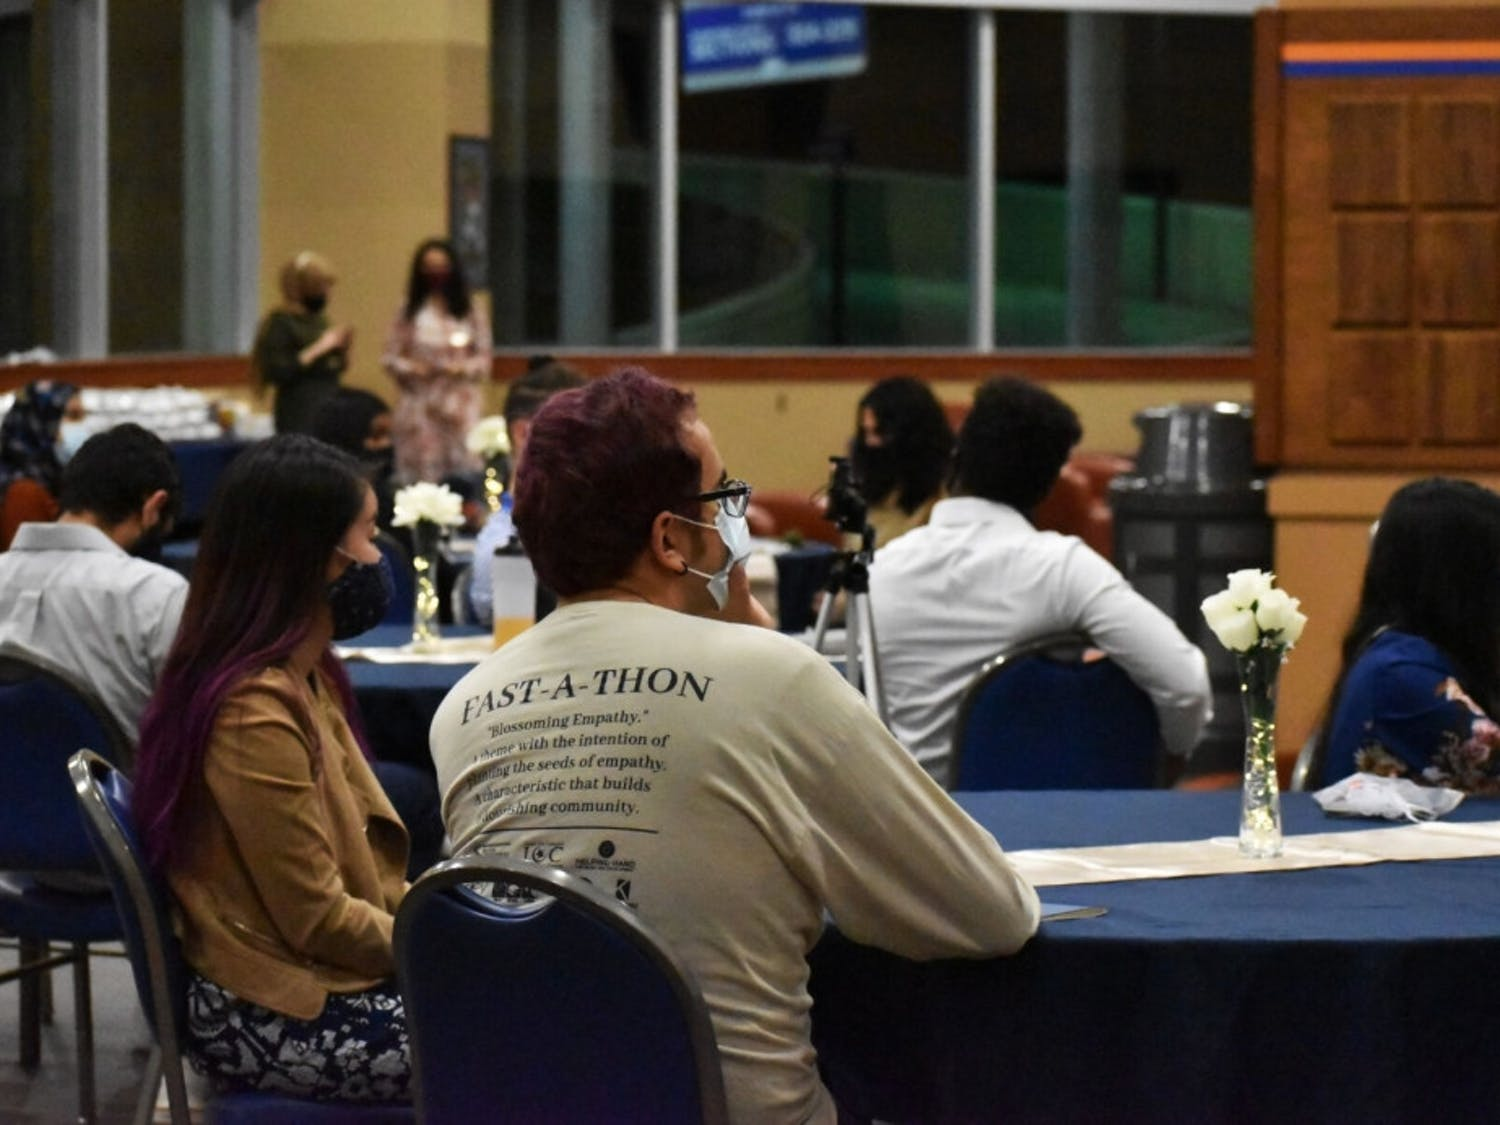 Zachary Raad (center), 20, a UF chemistry and Chinese language senior, is one of about 35 UF students seen attending Linda Soursour's speaking event for Islam Appreciation Month at the Touchdown Terrace on Tuesday, Oct. 27, 2020.